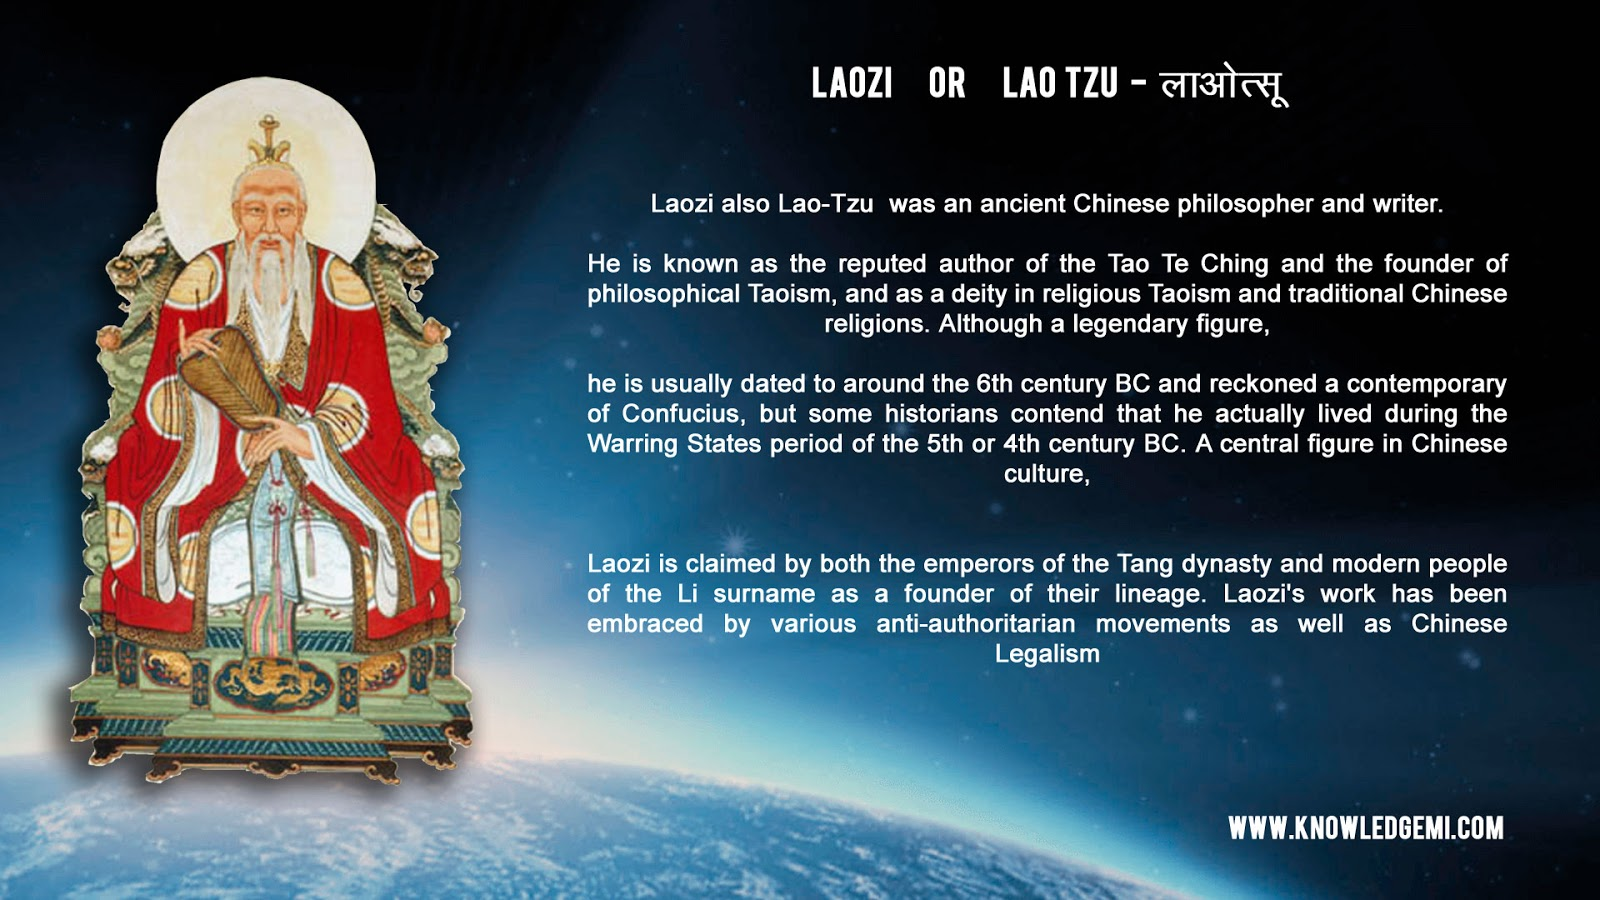 an overview of taoism a philosophical and religious tradition of ancient china Of taoism upon chinese thought, religion, art, culture and society will also be covered course format and prerequisites this course is a.